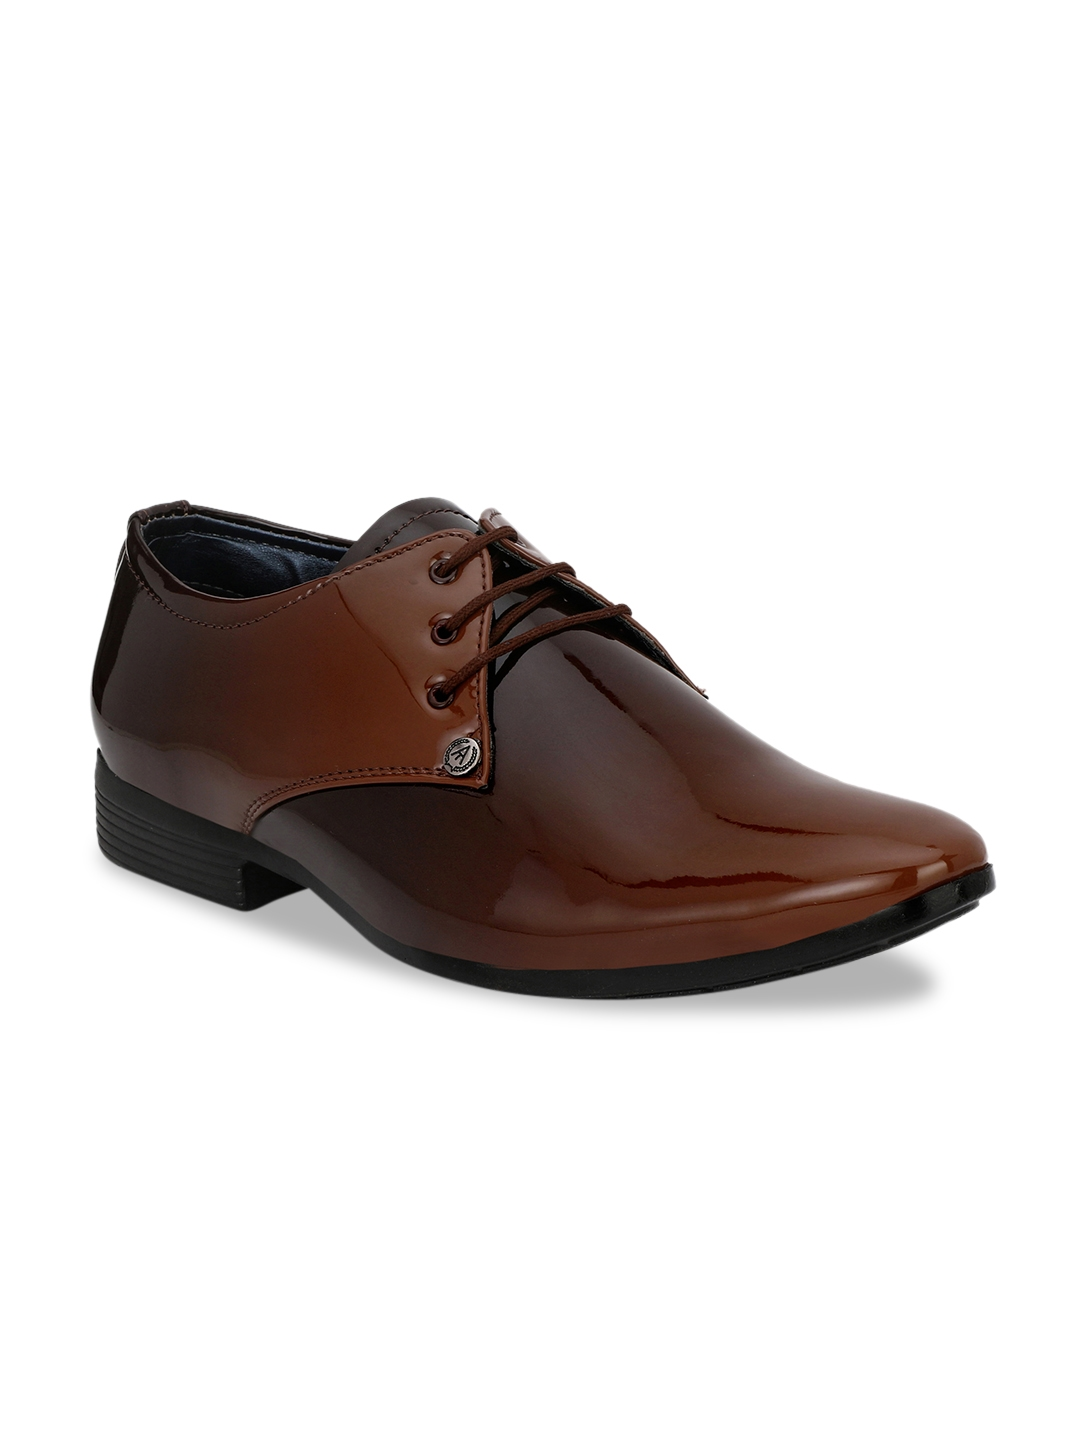 Ferraiolo Men Brown LaceUp Formal Brown Shoe Ferraiolo Formal Shoes